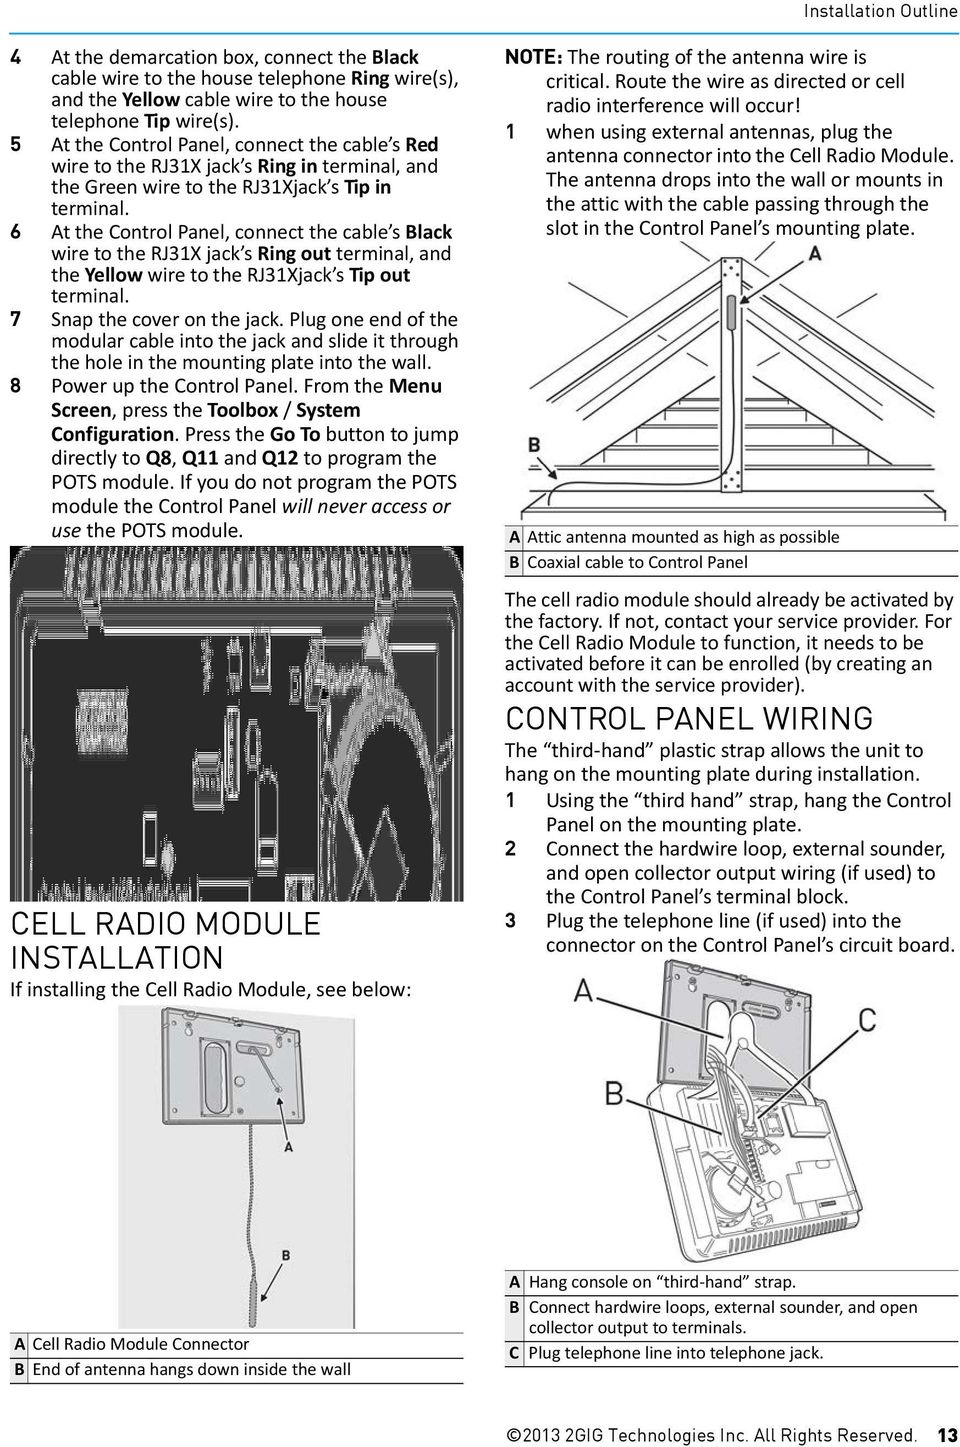 Gocontrol Install Guide Wireless Security System Installation And Rj31x Wiring Diagram 6 At The Control Panel Connect Cable S Black Wire To Jack